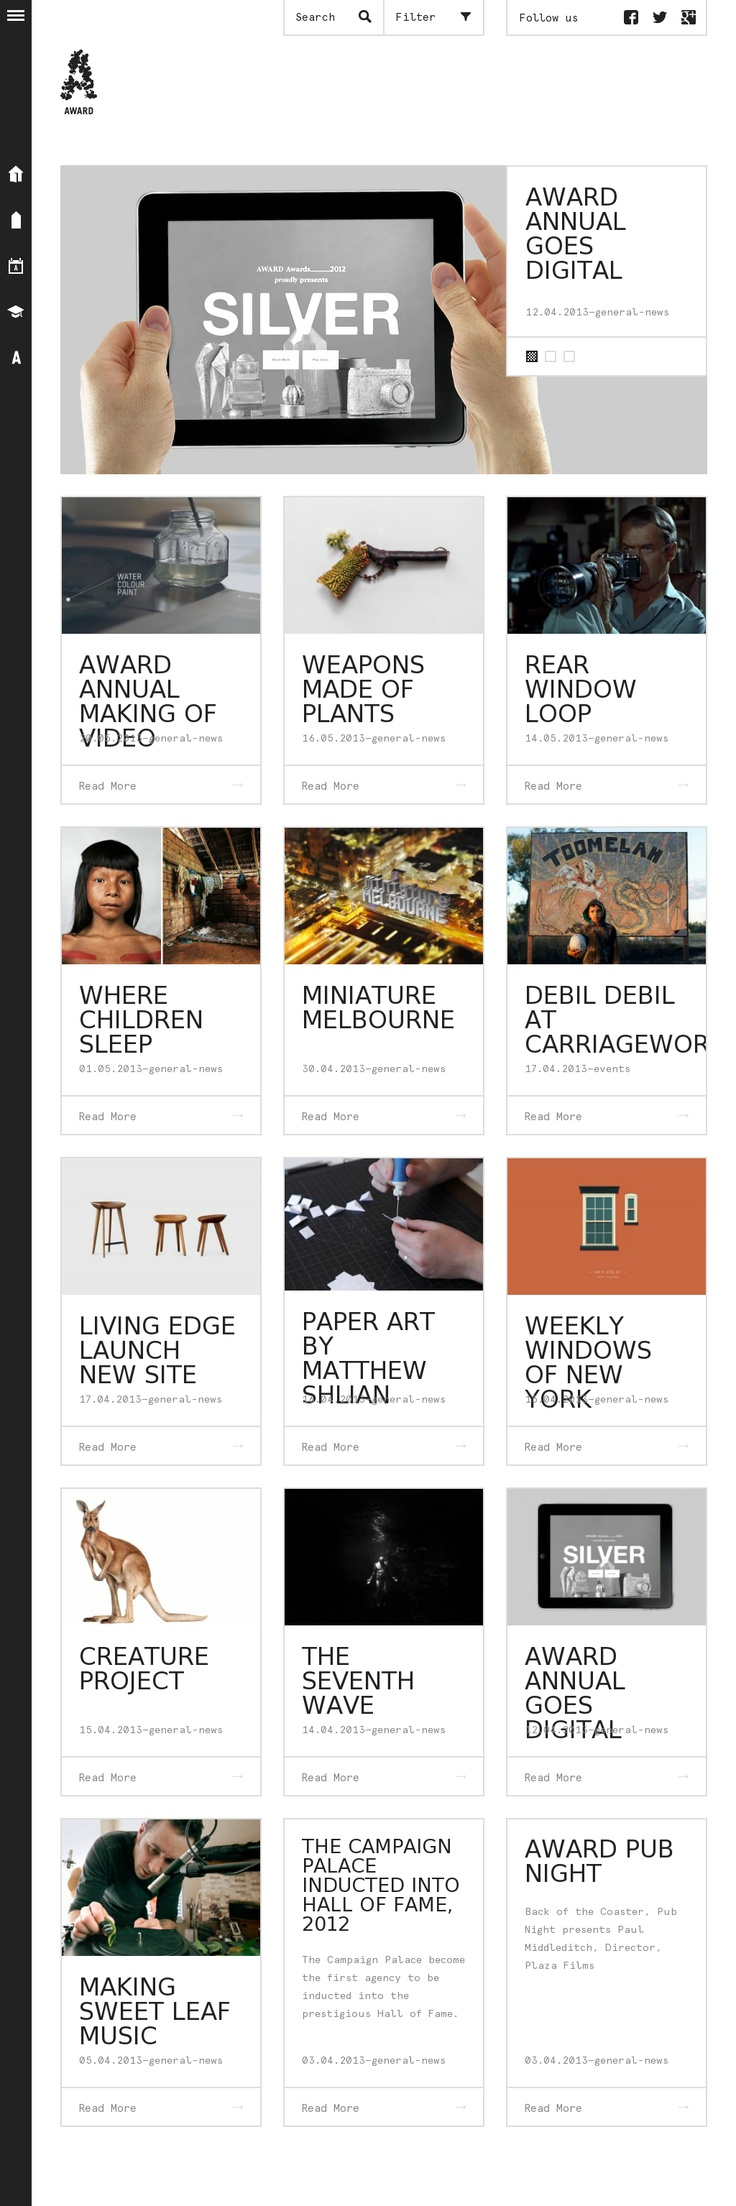 Unique flat, minimal design on this blog web site.